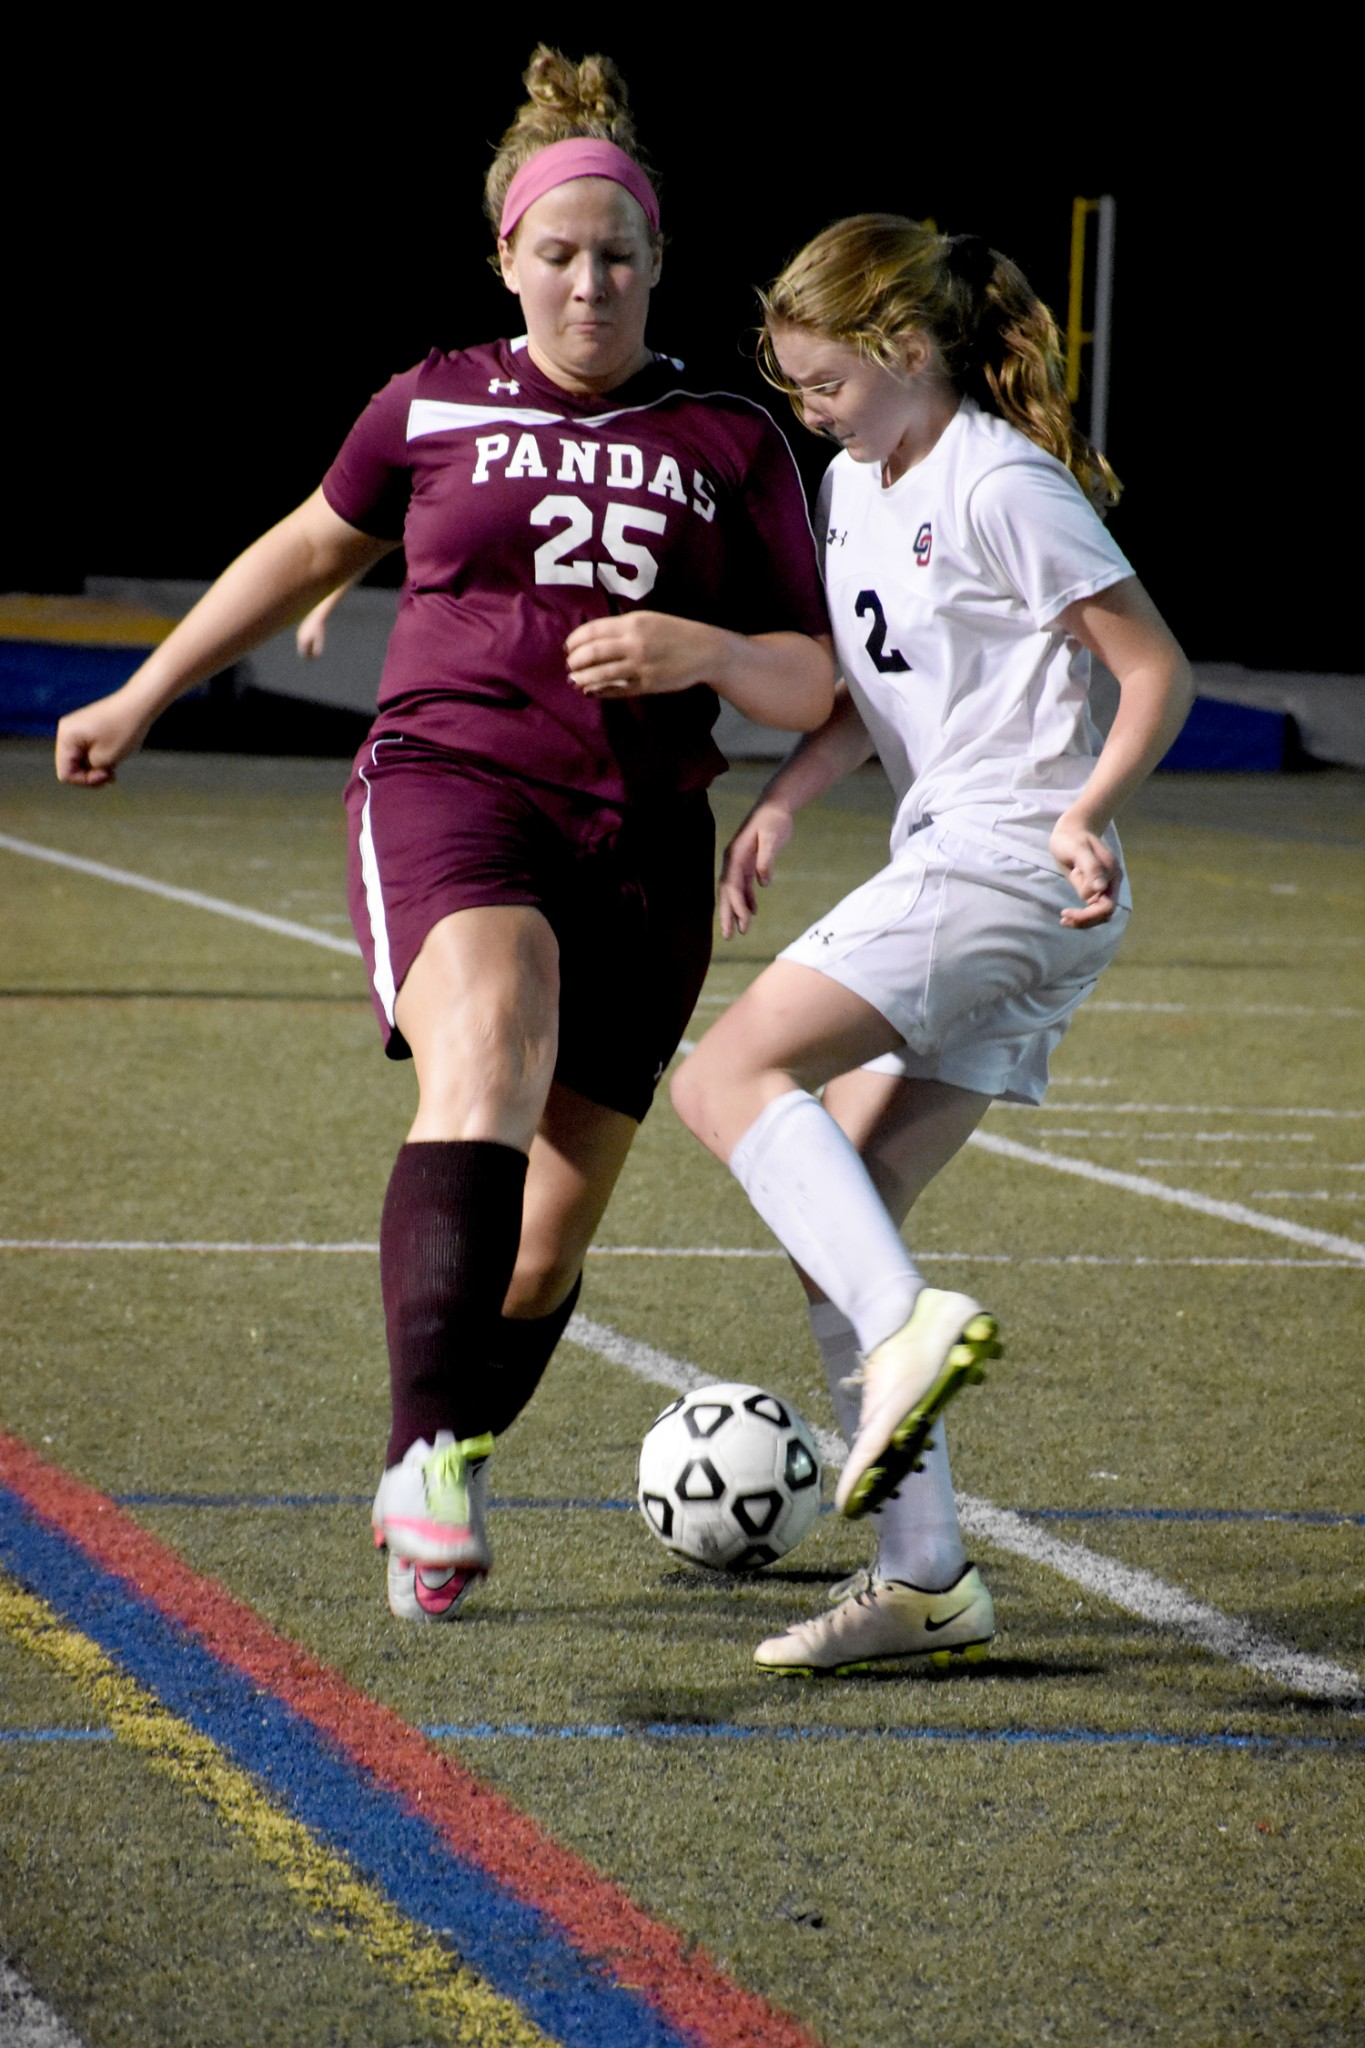 Cardinal O'Hara's Gina Amoroso, right, attempts to keep the ball away from Bonner & Prendergast's Kelsey Czibik. O'Hara claimed a 3-2 win Tuesday in the Catholic League play-in game. (Digital First Media/Anne Neborak)